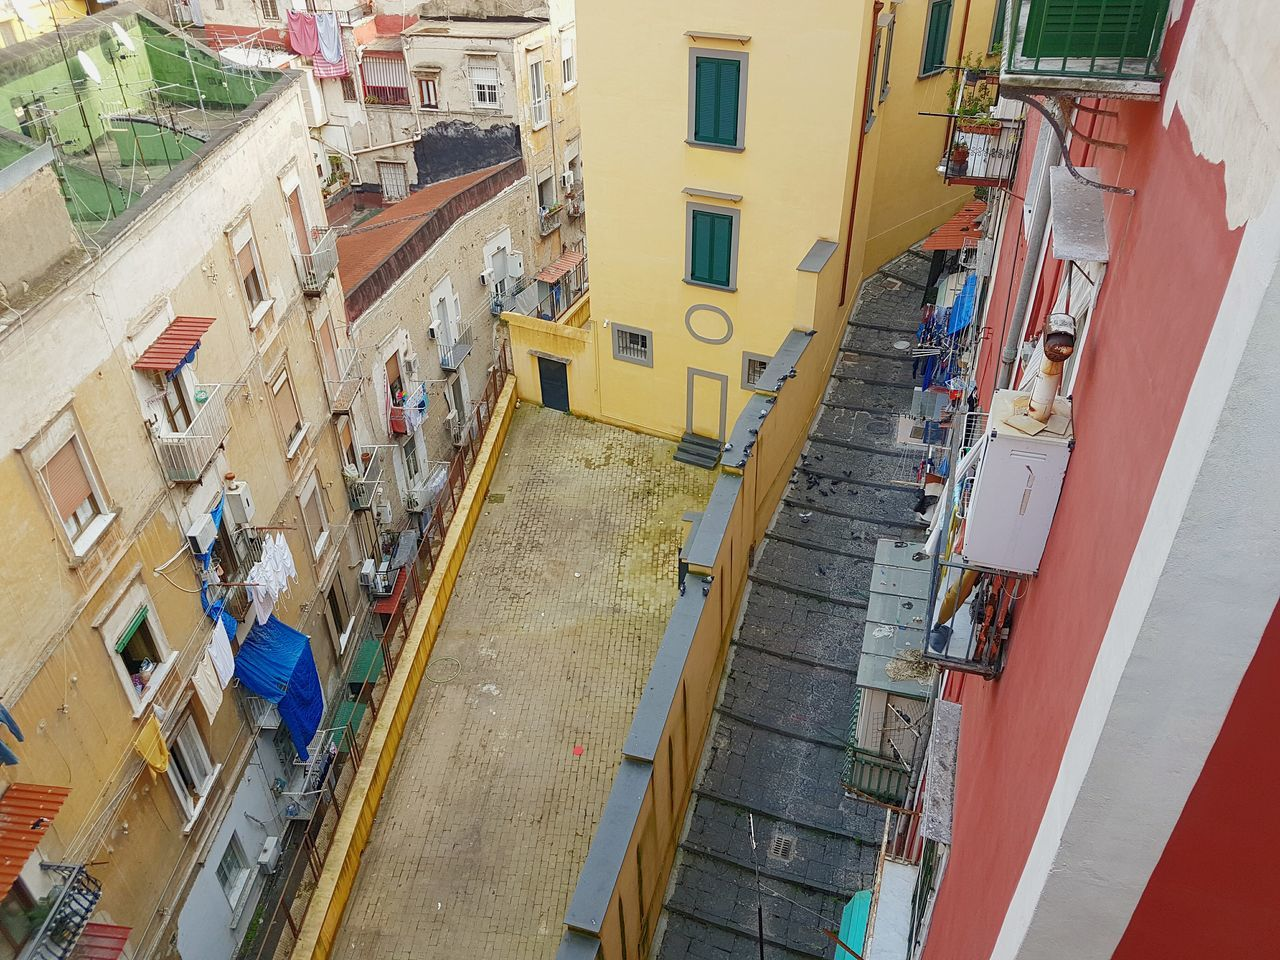 Not all who wander are lost.... seen in Naples, Italy Building Exterior Architecture High Angle View Travel Destinations Outdoors Built Structure Day City Large Group Of People People Adult Adults Only Naples, Italy Naples Colorful